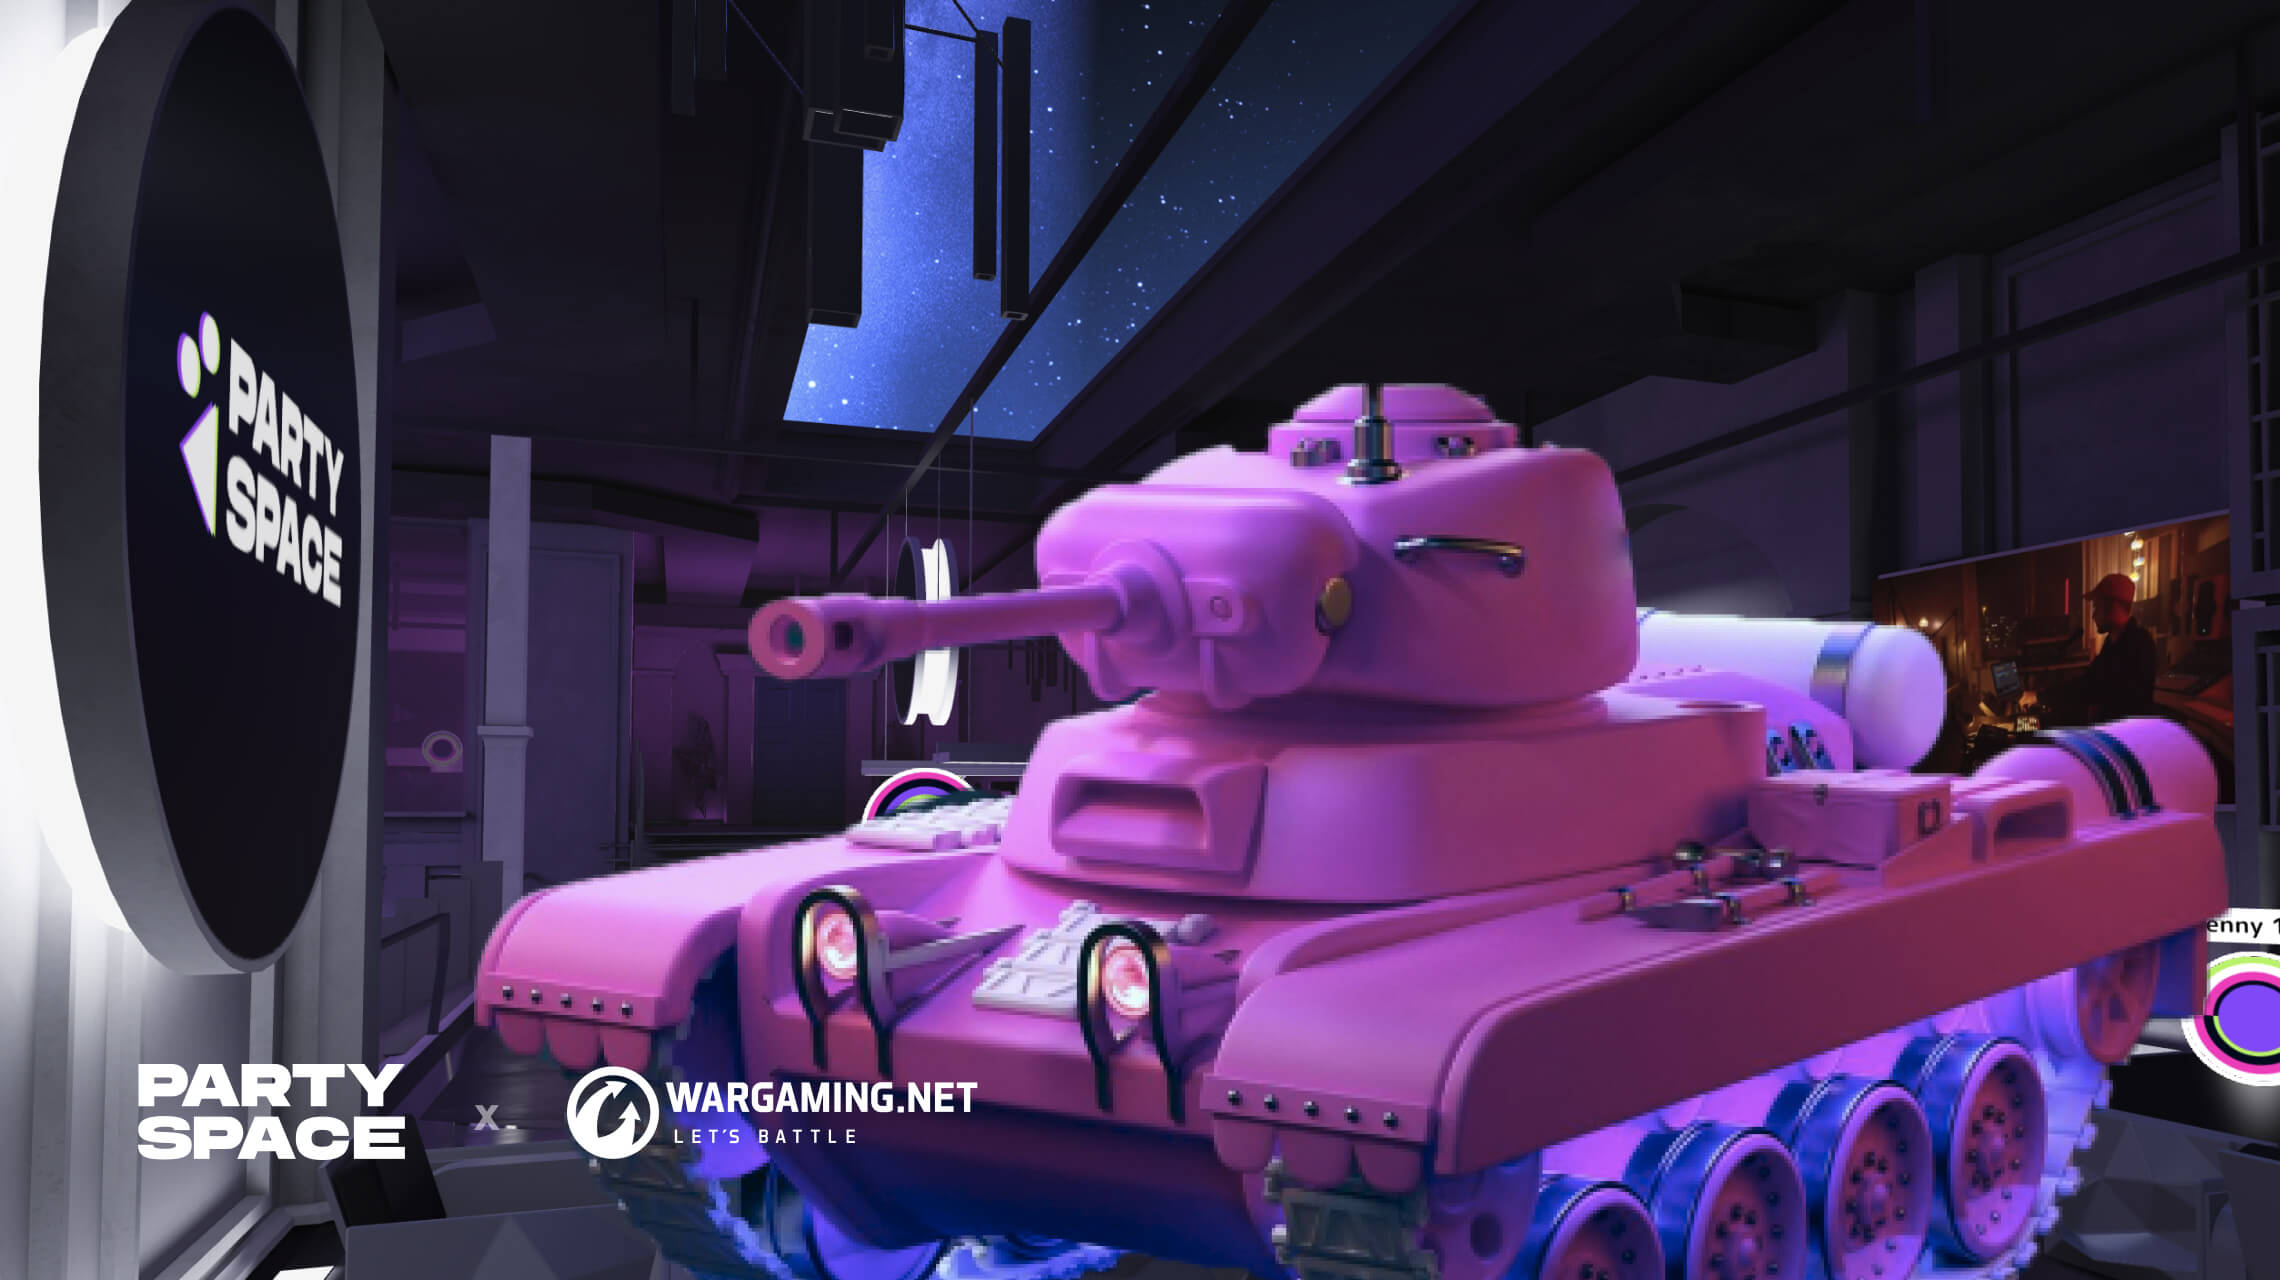 300 Wargaming Employees Celebrated the 7th Anniversary of their Studio's Office in a 3D Virtual Space